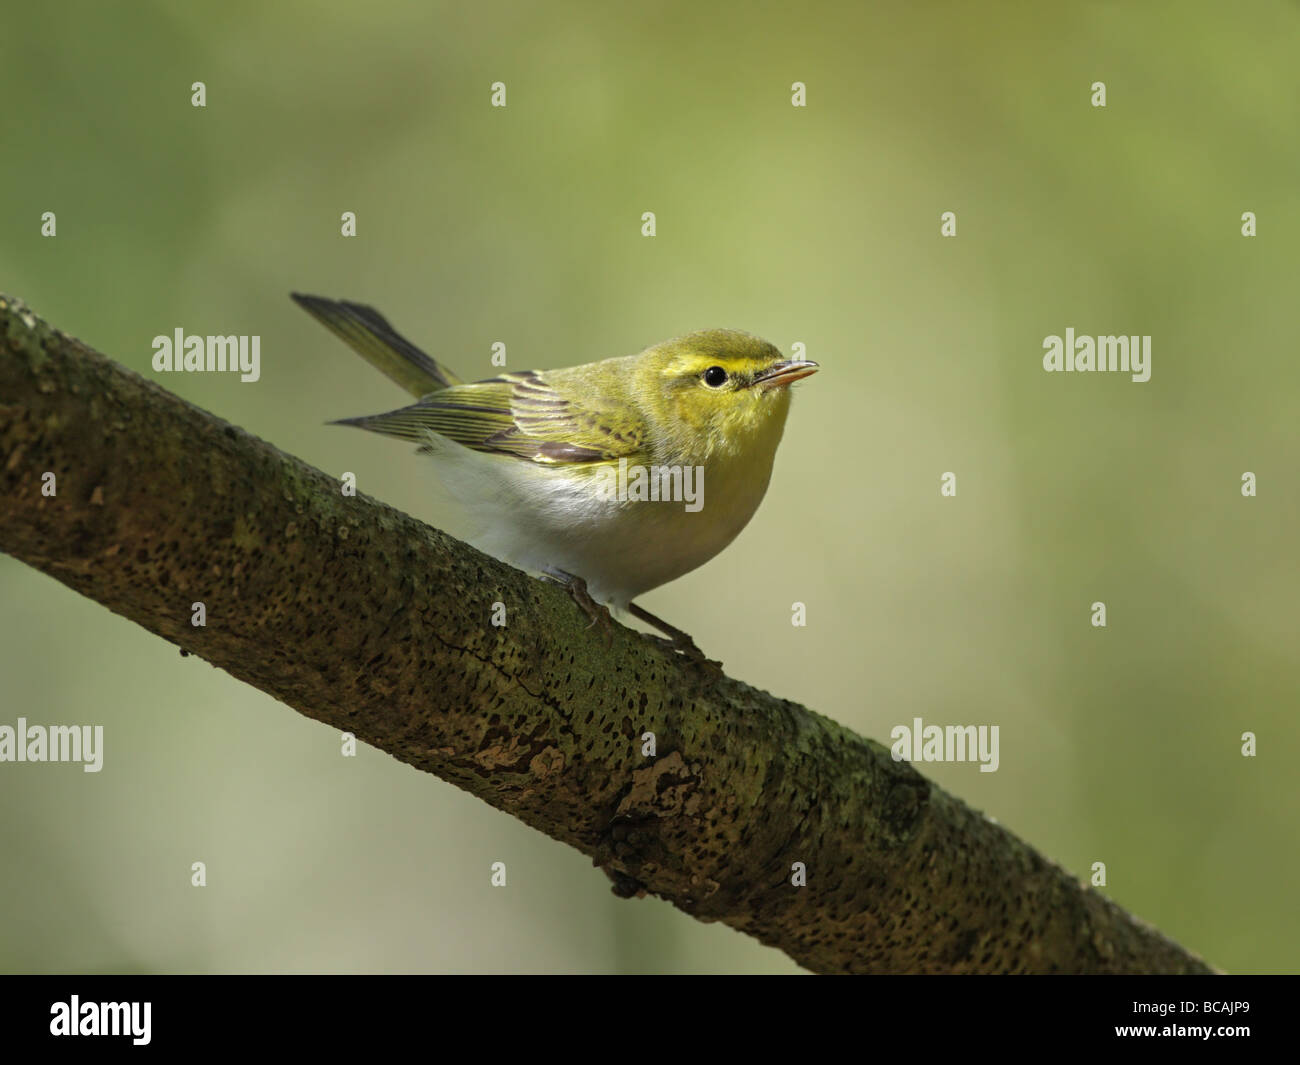 Wood warbler, Phlloscopus sibilatrix, perched on branch - Stock Image